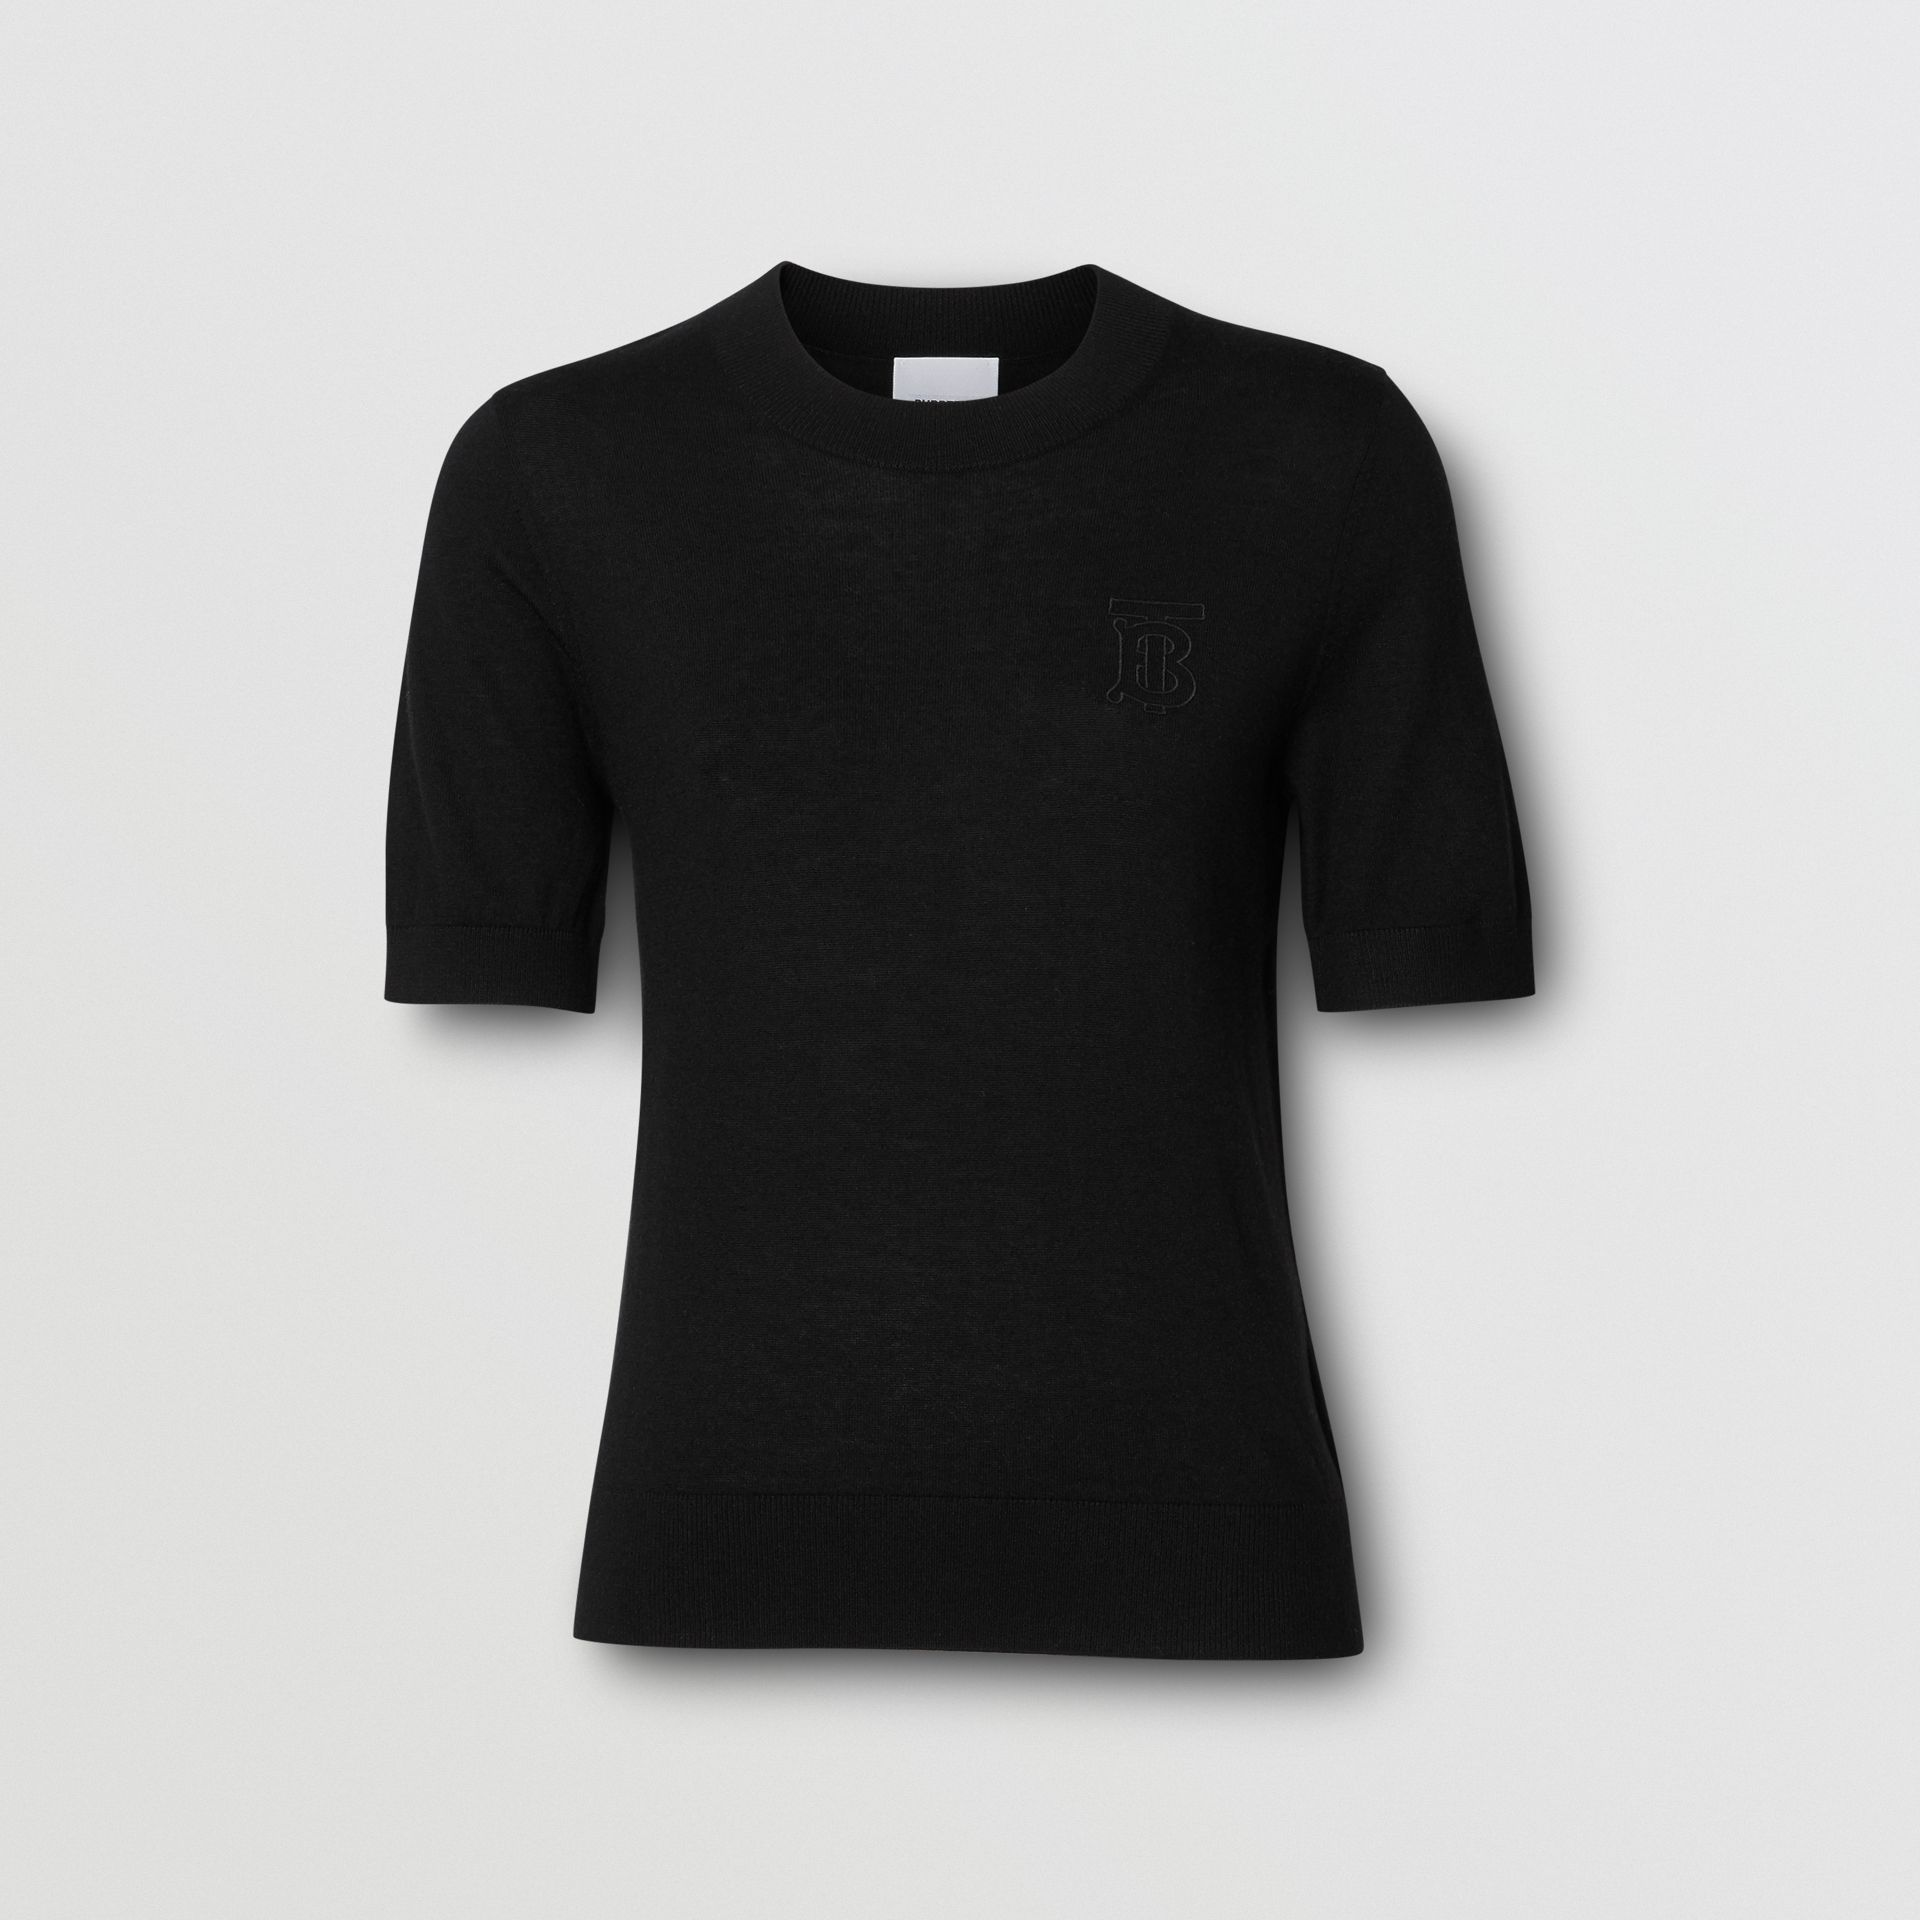 Monogram Motif Cashmere Top in Black - Women | Burberry United Kingdom - gallery image 3